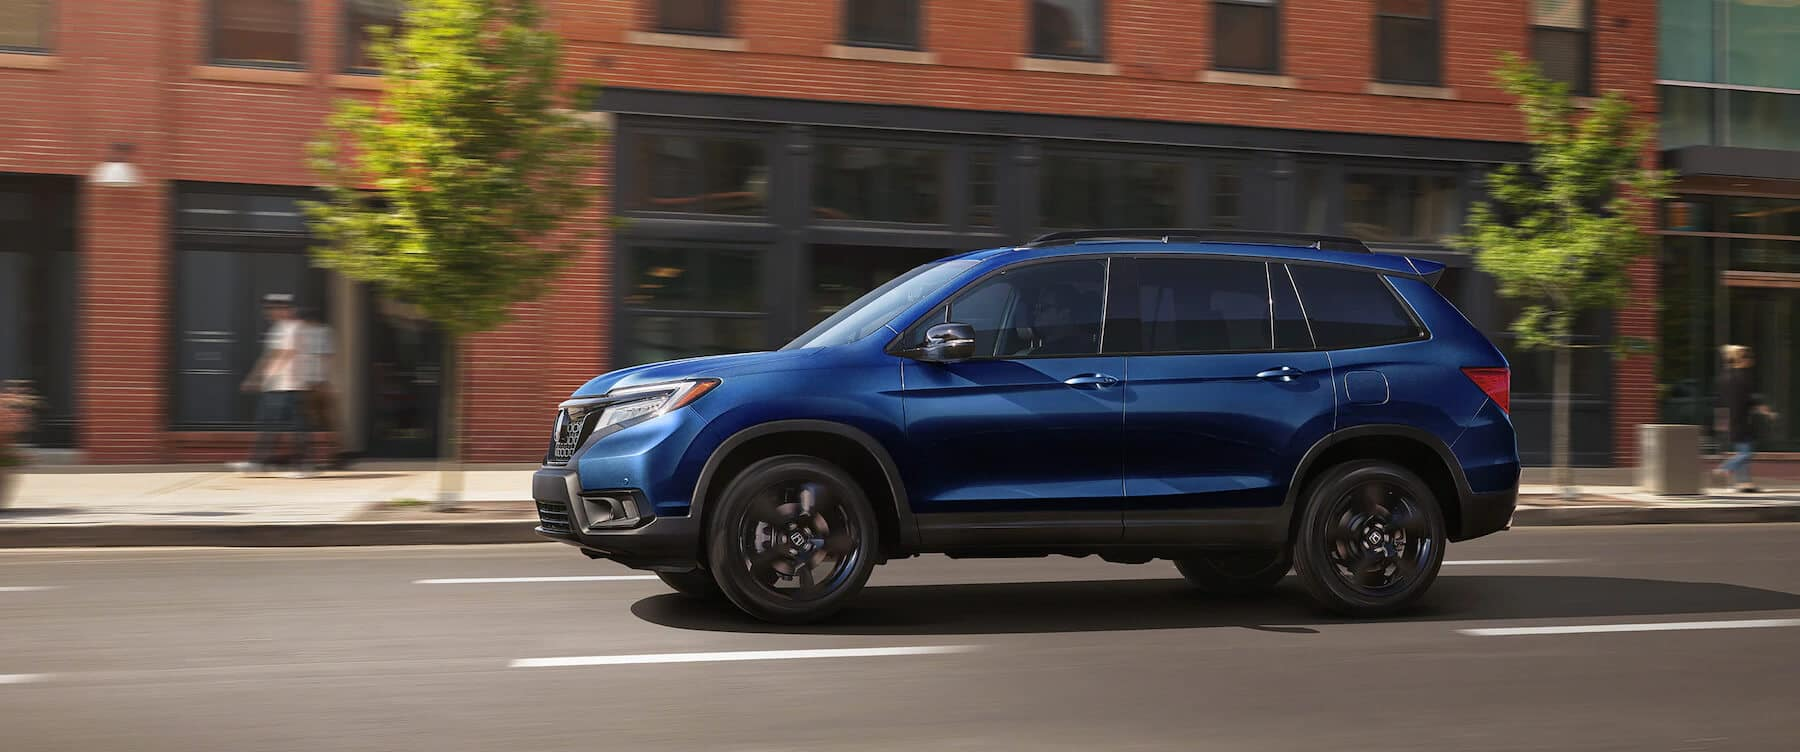 Honda SUV Lineup: 2021 Passport Slider